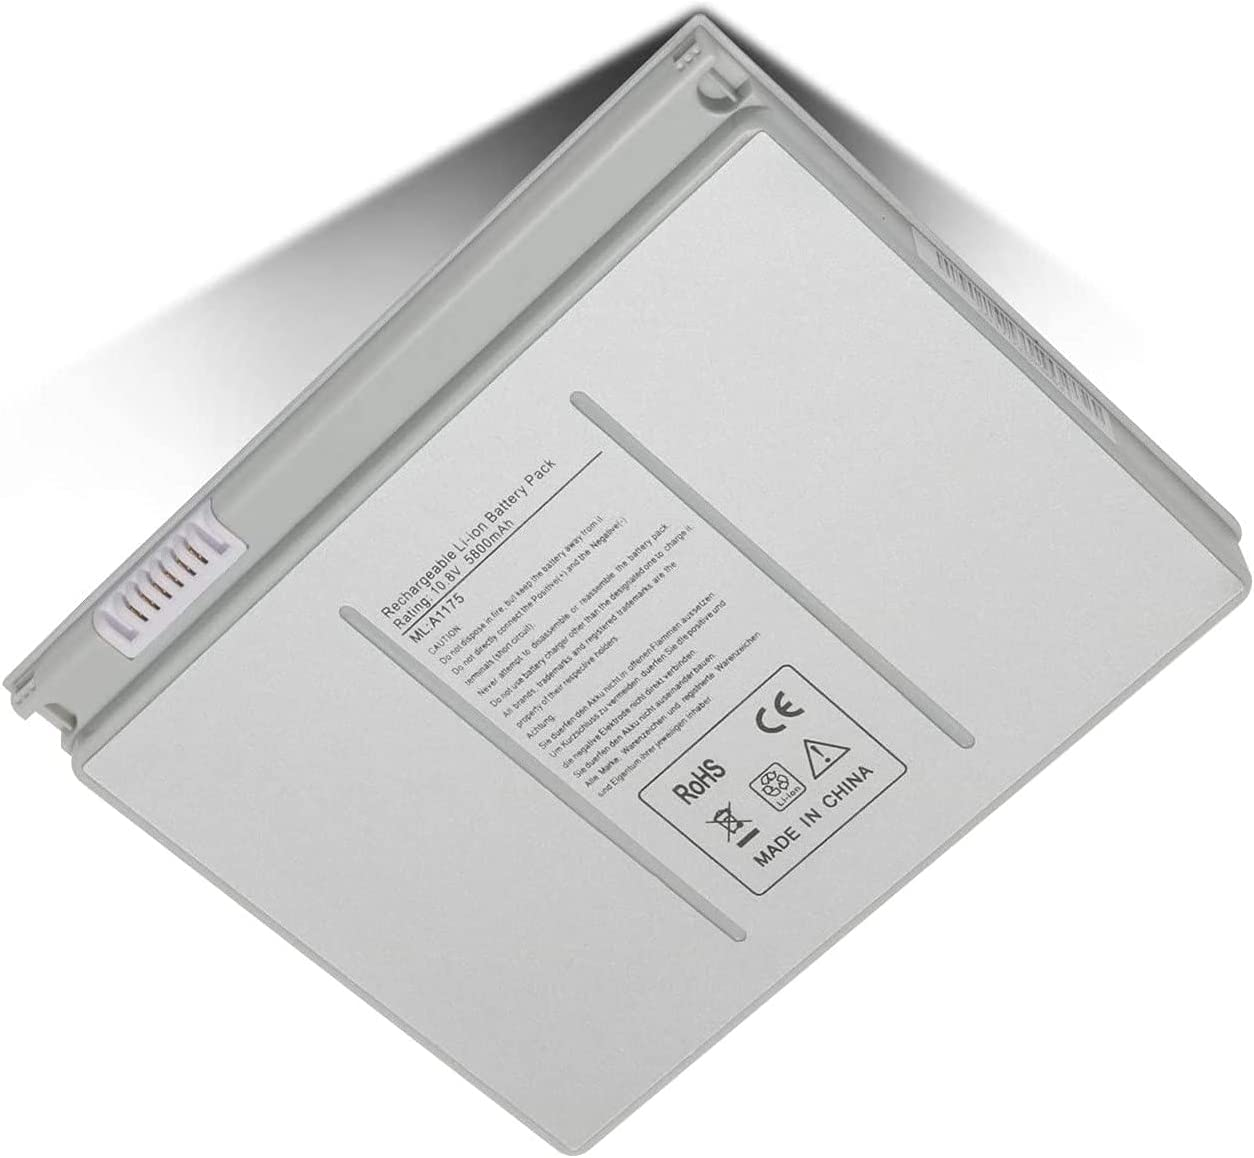 A1175 Laptop Battery for Apple MacBook Pro 15